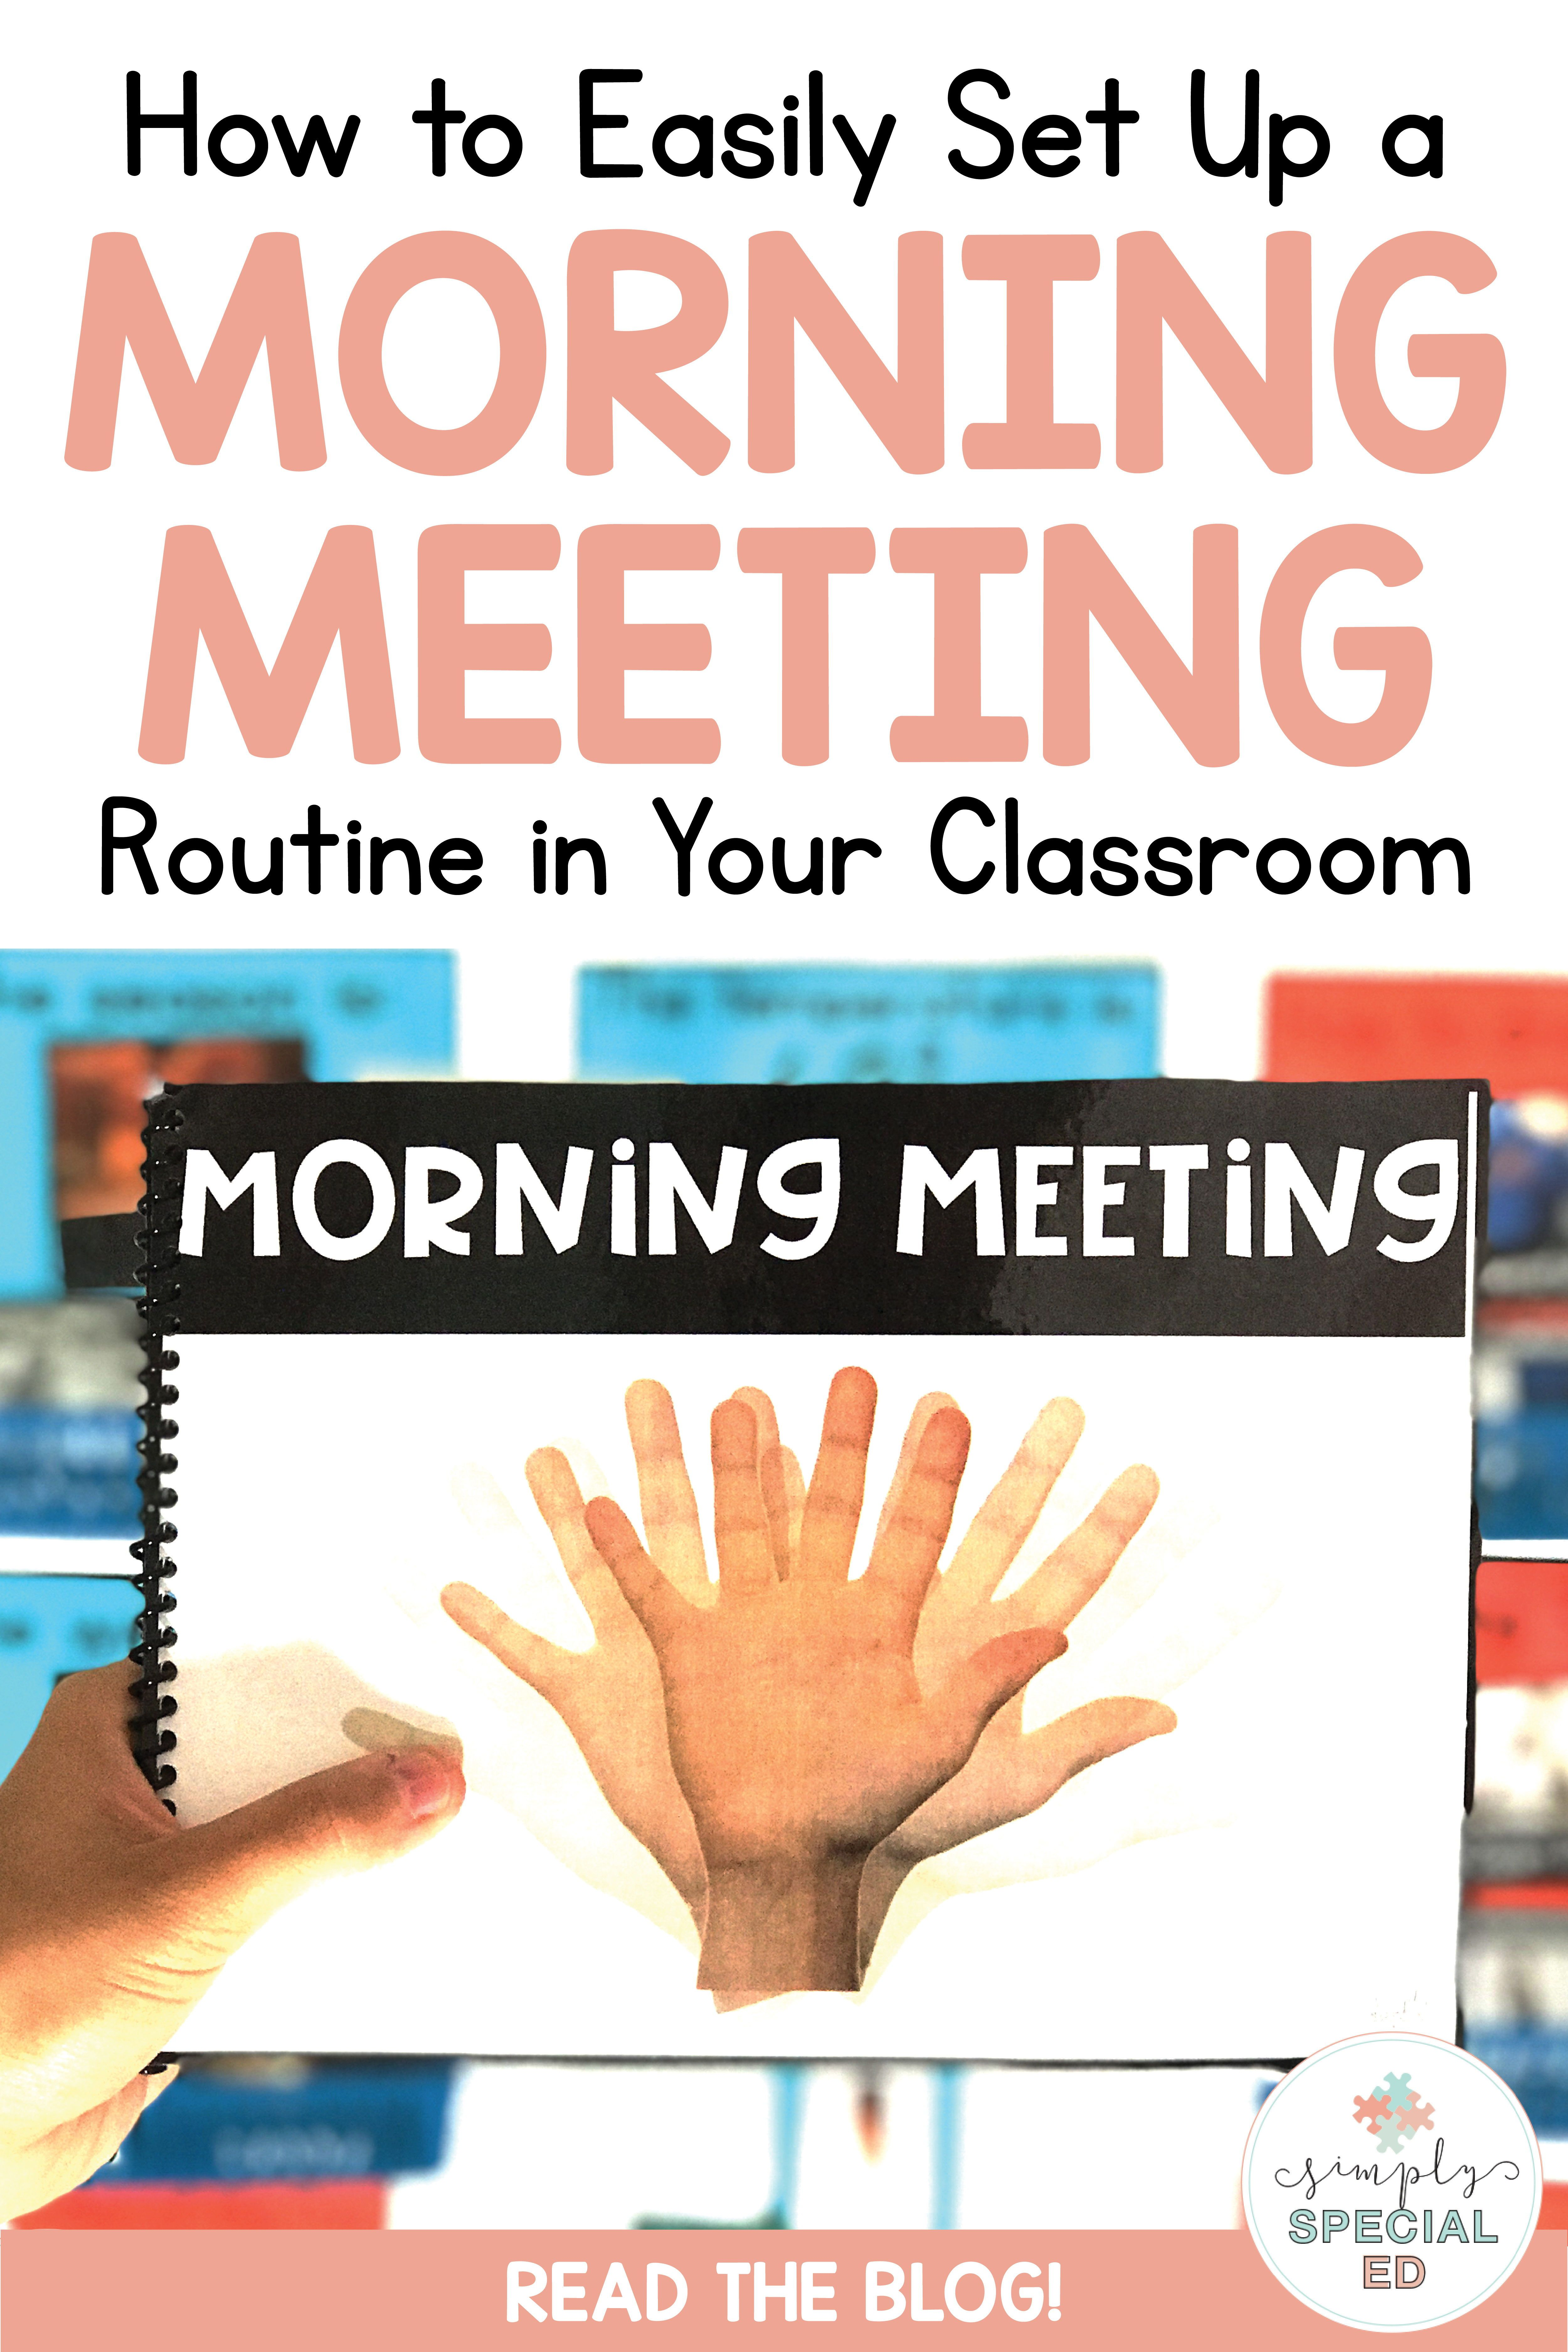 Morning Meeting Routine